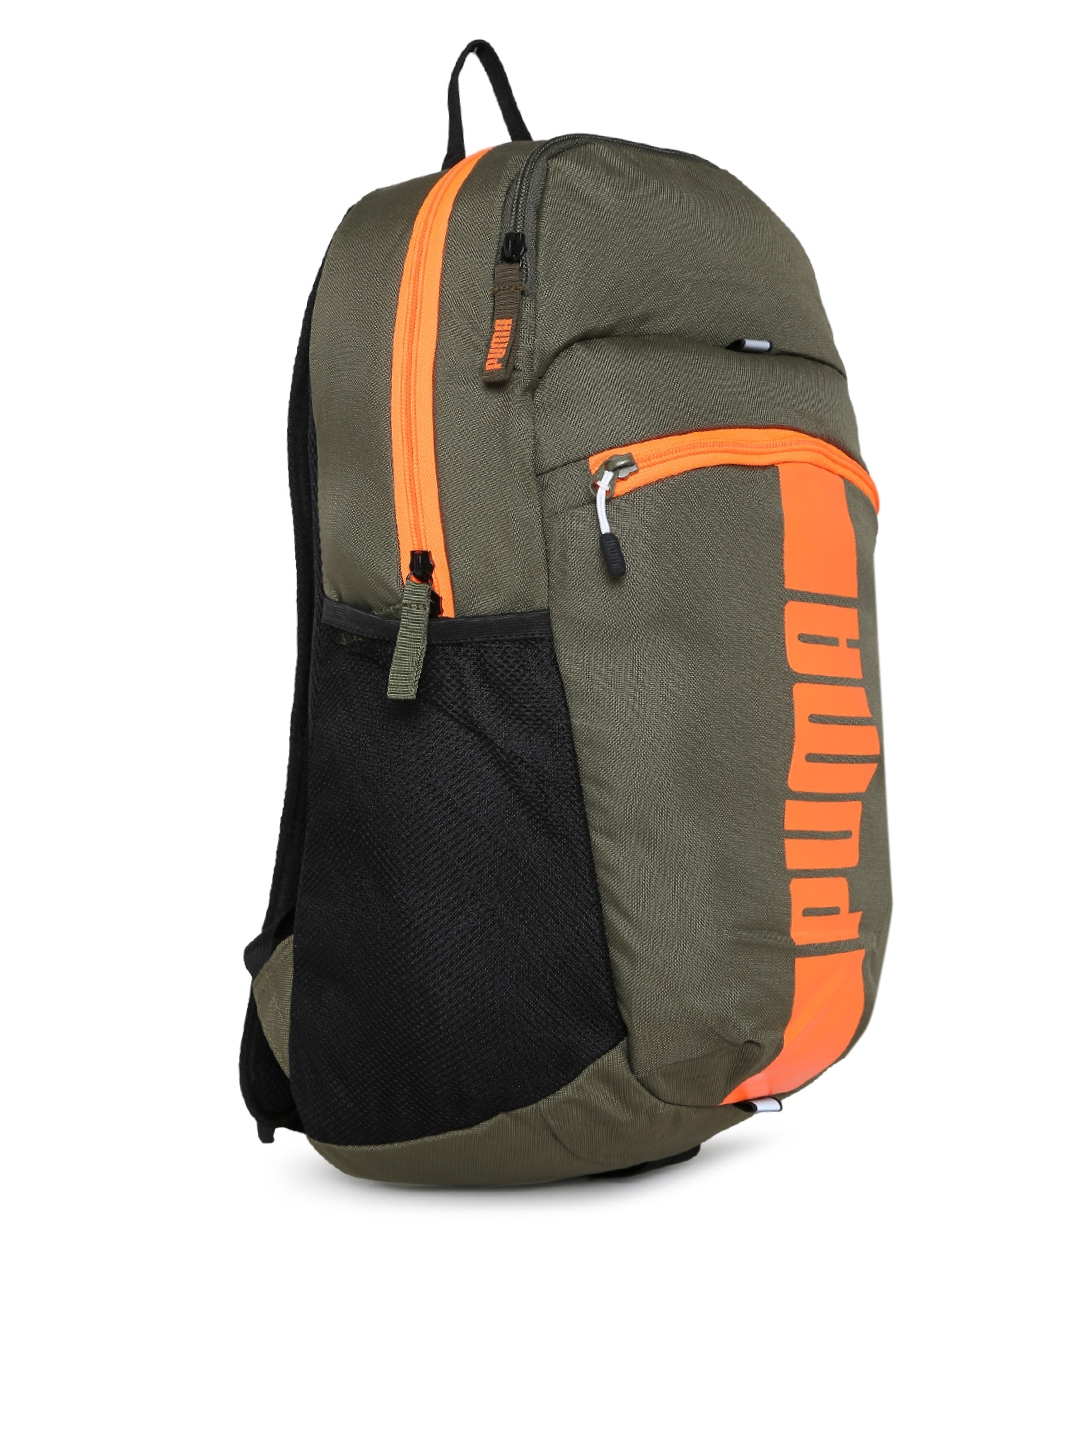 c78424a5a4 Buy Puma Unisex Olive Green Deck Backpack - Backpacks for Unisex ...